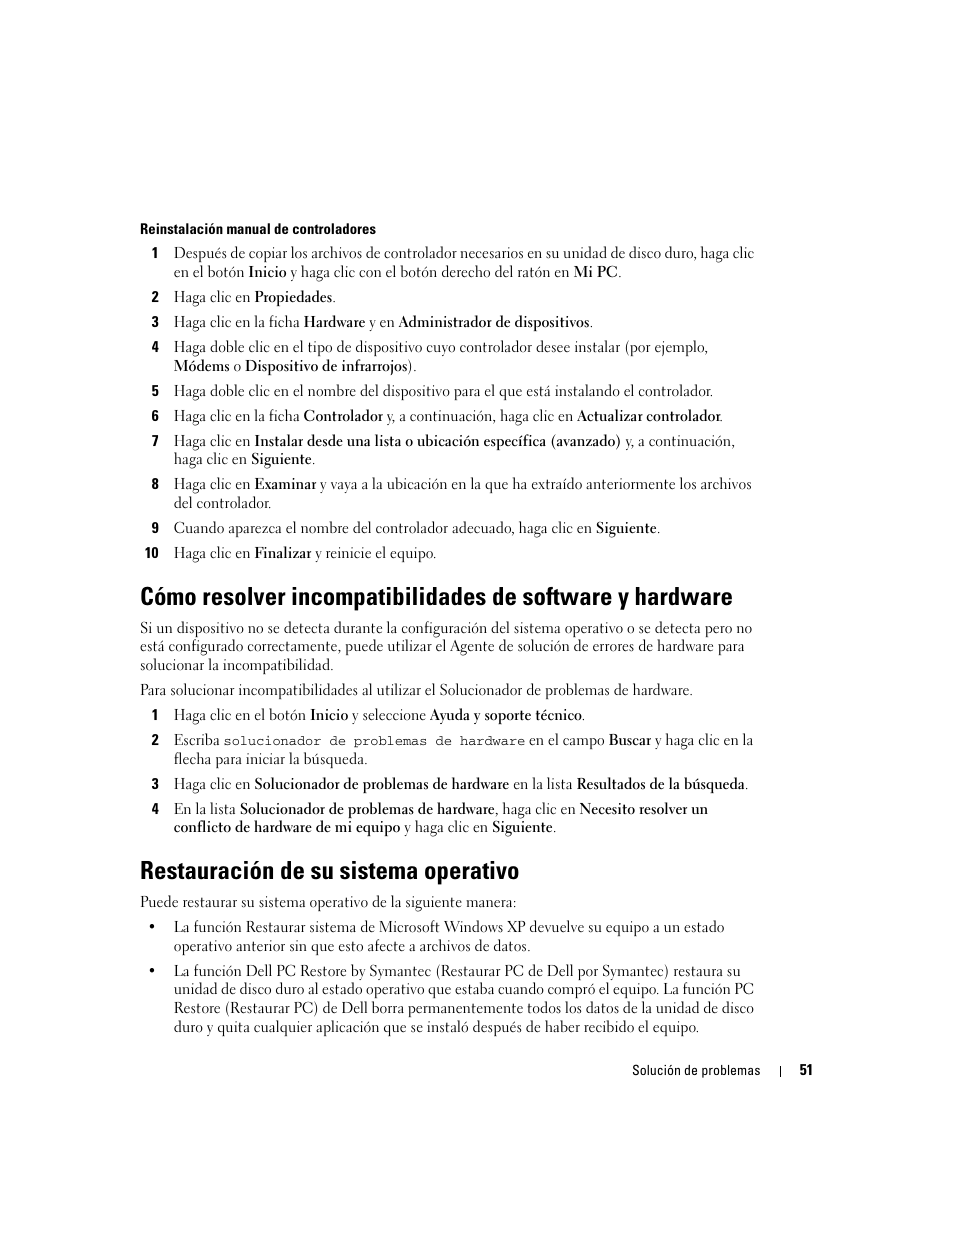 Dell Inspiron 700m Manual Chevy S10 Wiring Diagram Together With Ice Adventure Fs Recumbent Laptops That We Service Array Restauraci N De Su Sistema Operativo Del Rh Pdfmanuales Com